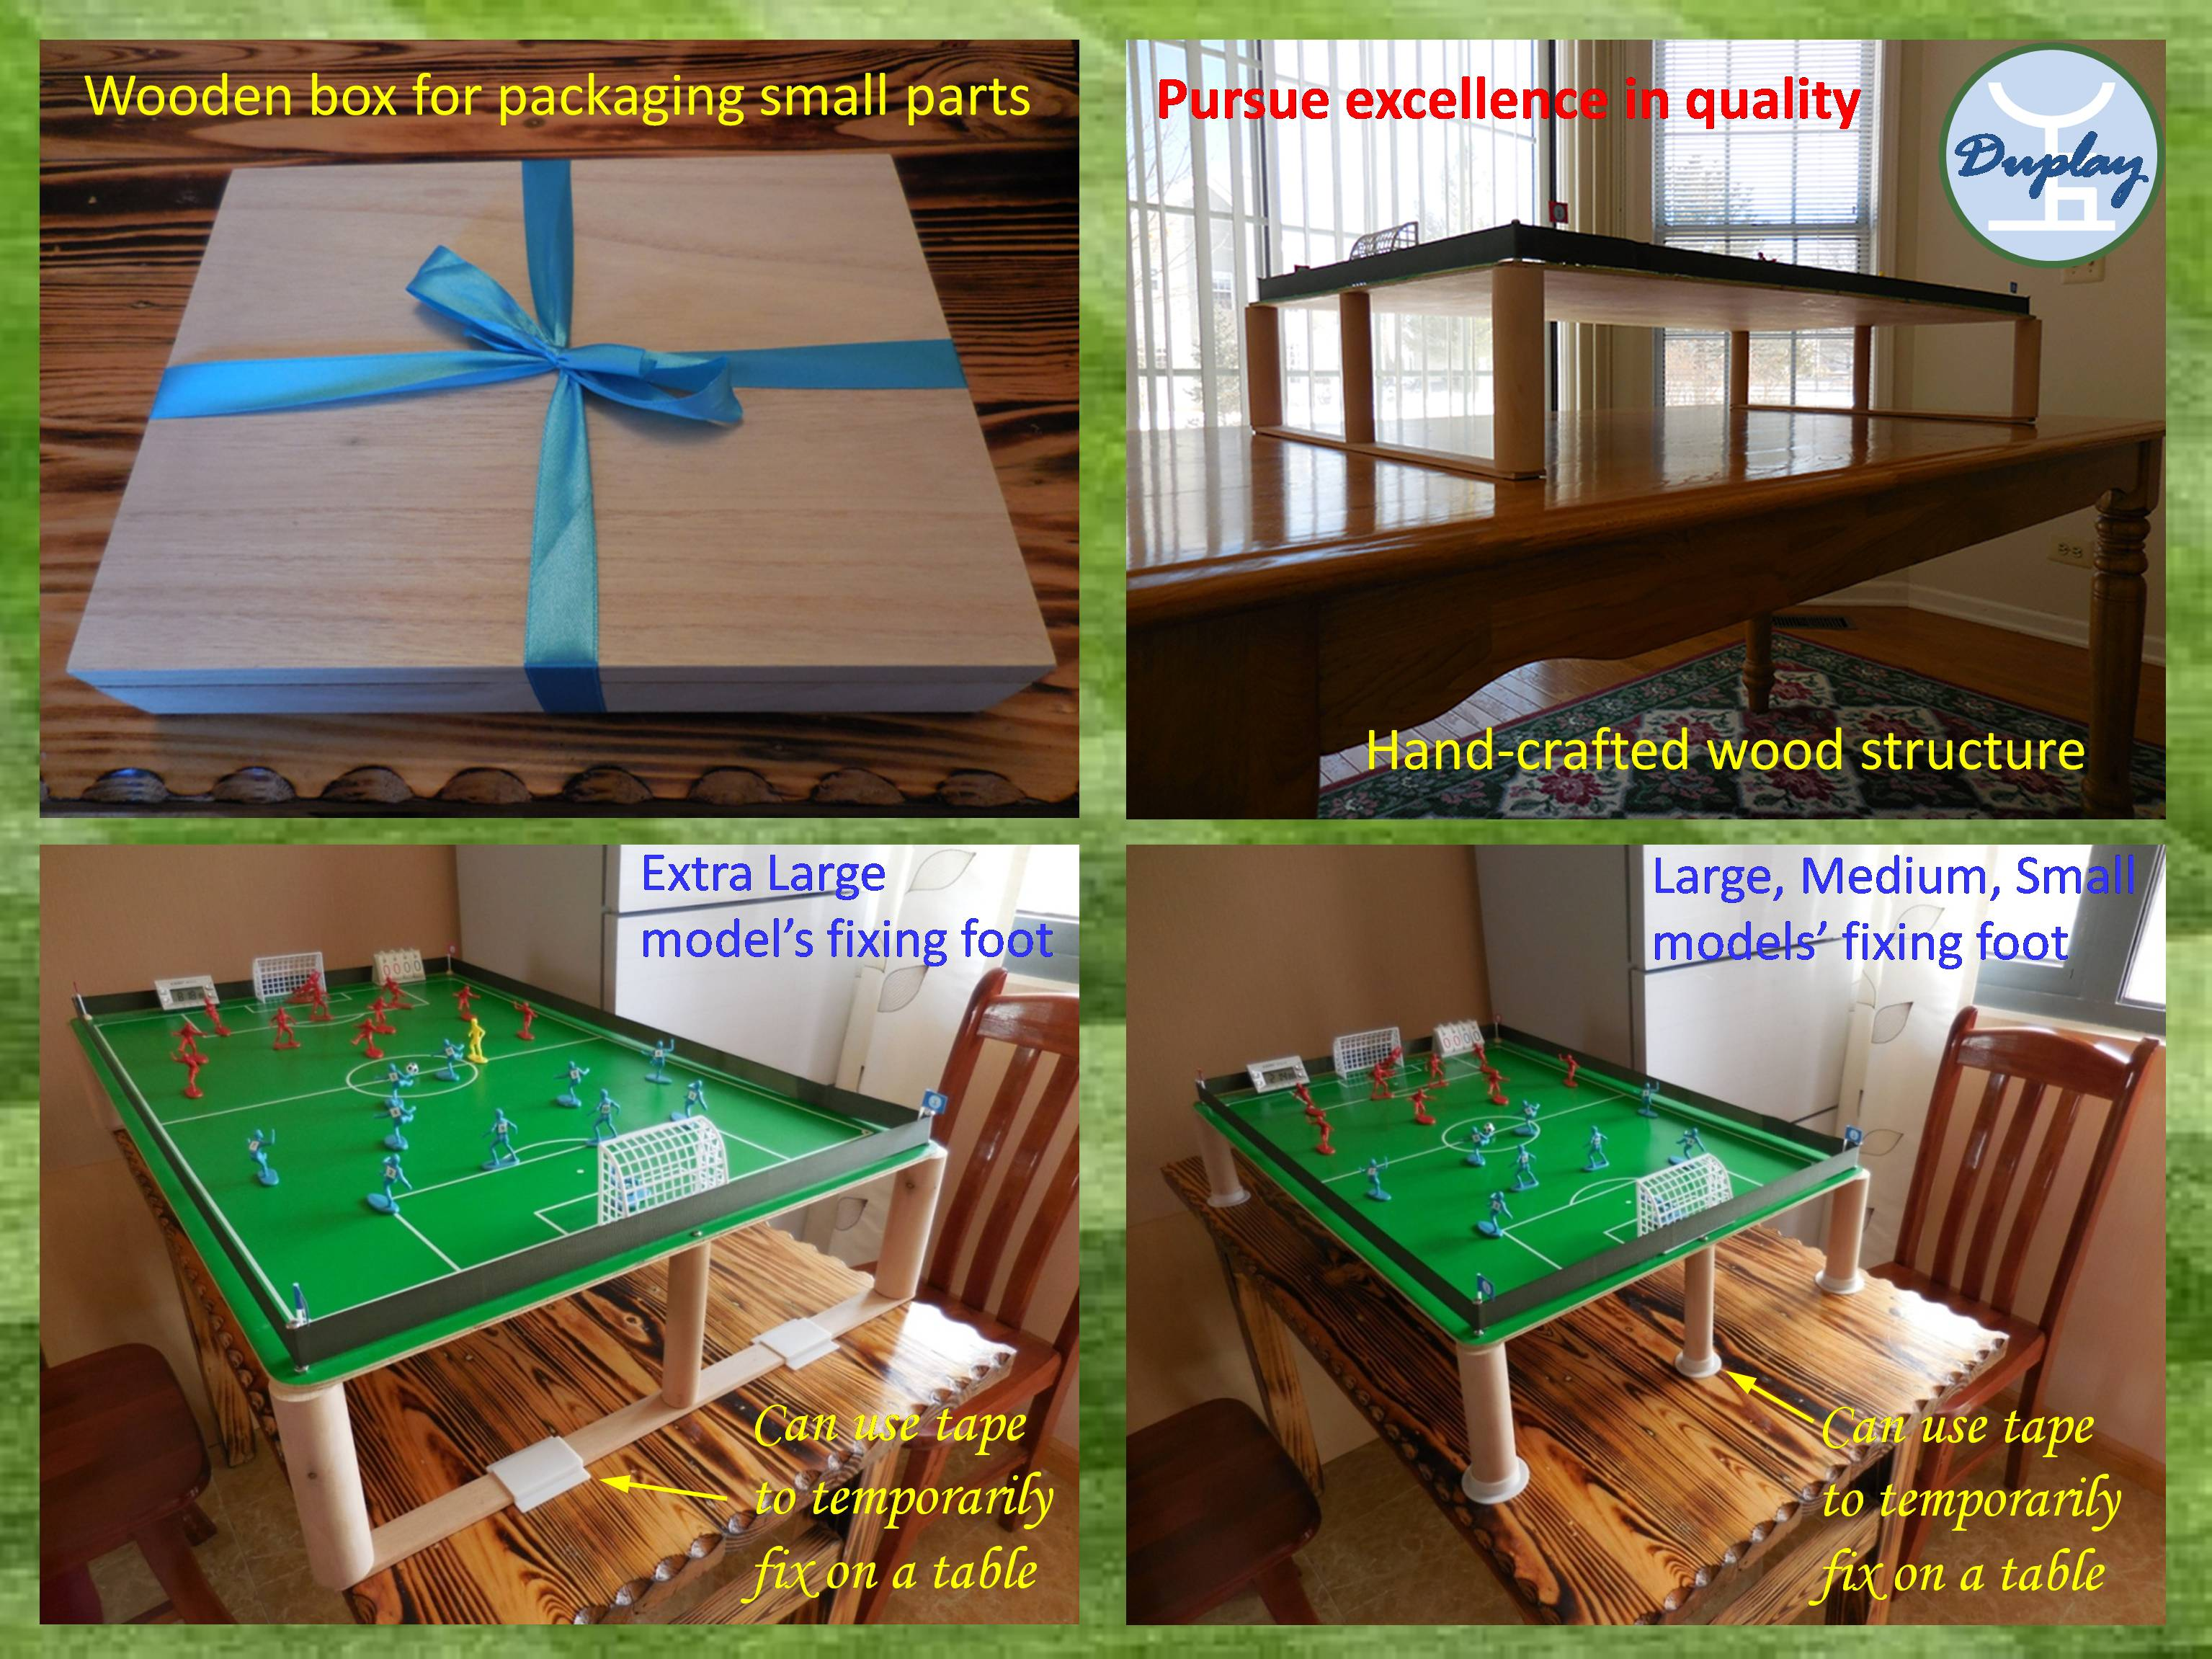 Keywords Of Product Features: Foosball Table, Football Game, Magnetic Game, Soccer  Match, Table Game, Tabletop Sports, Toy, Board Game, Table Top, ...